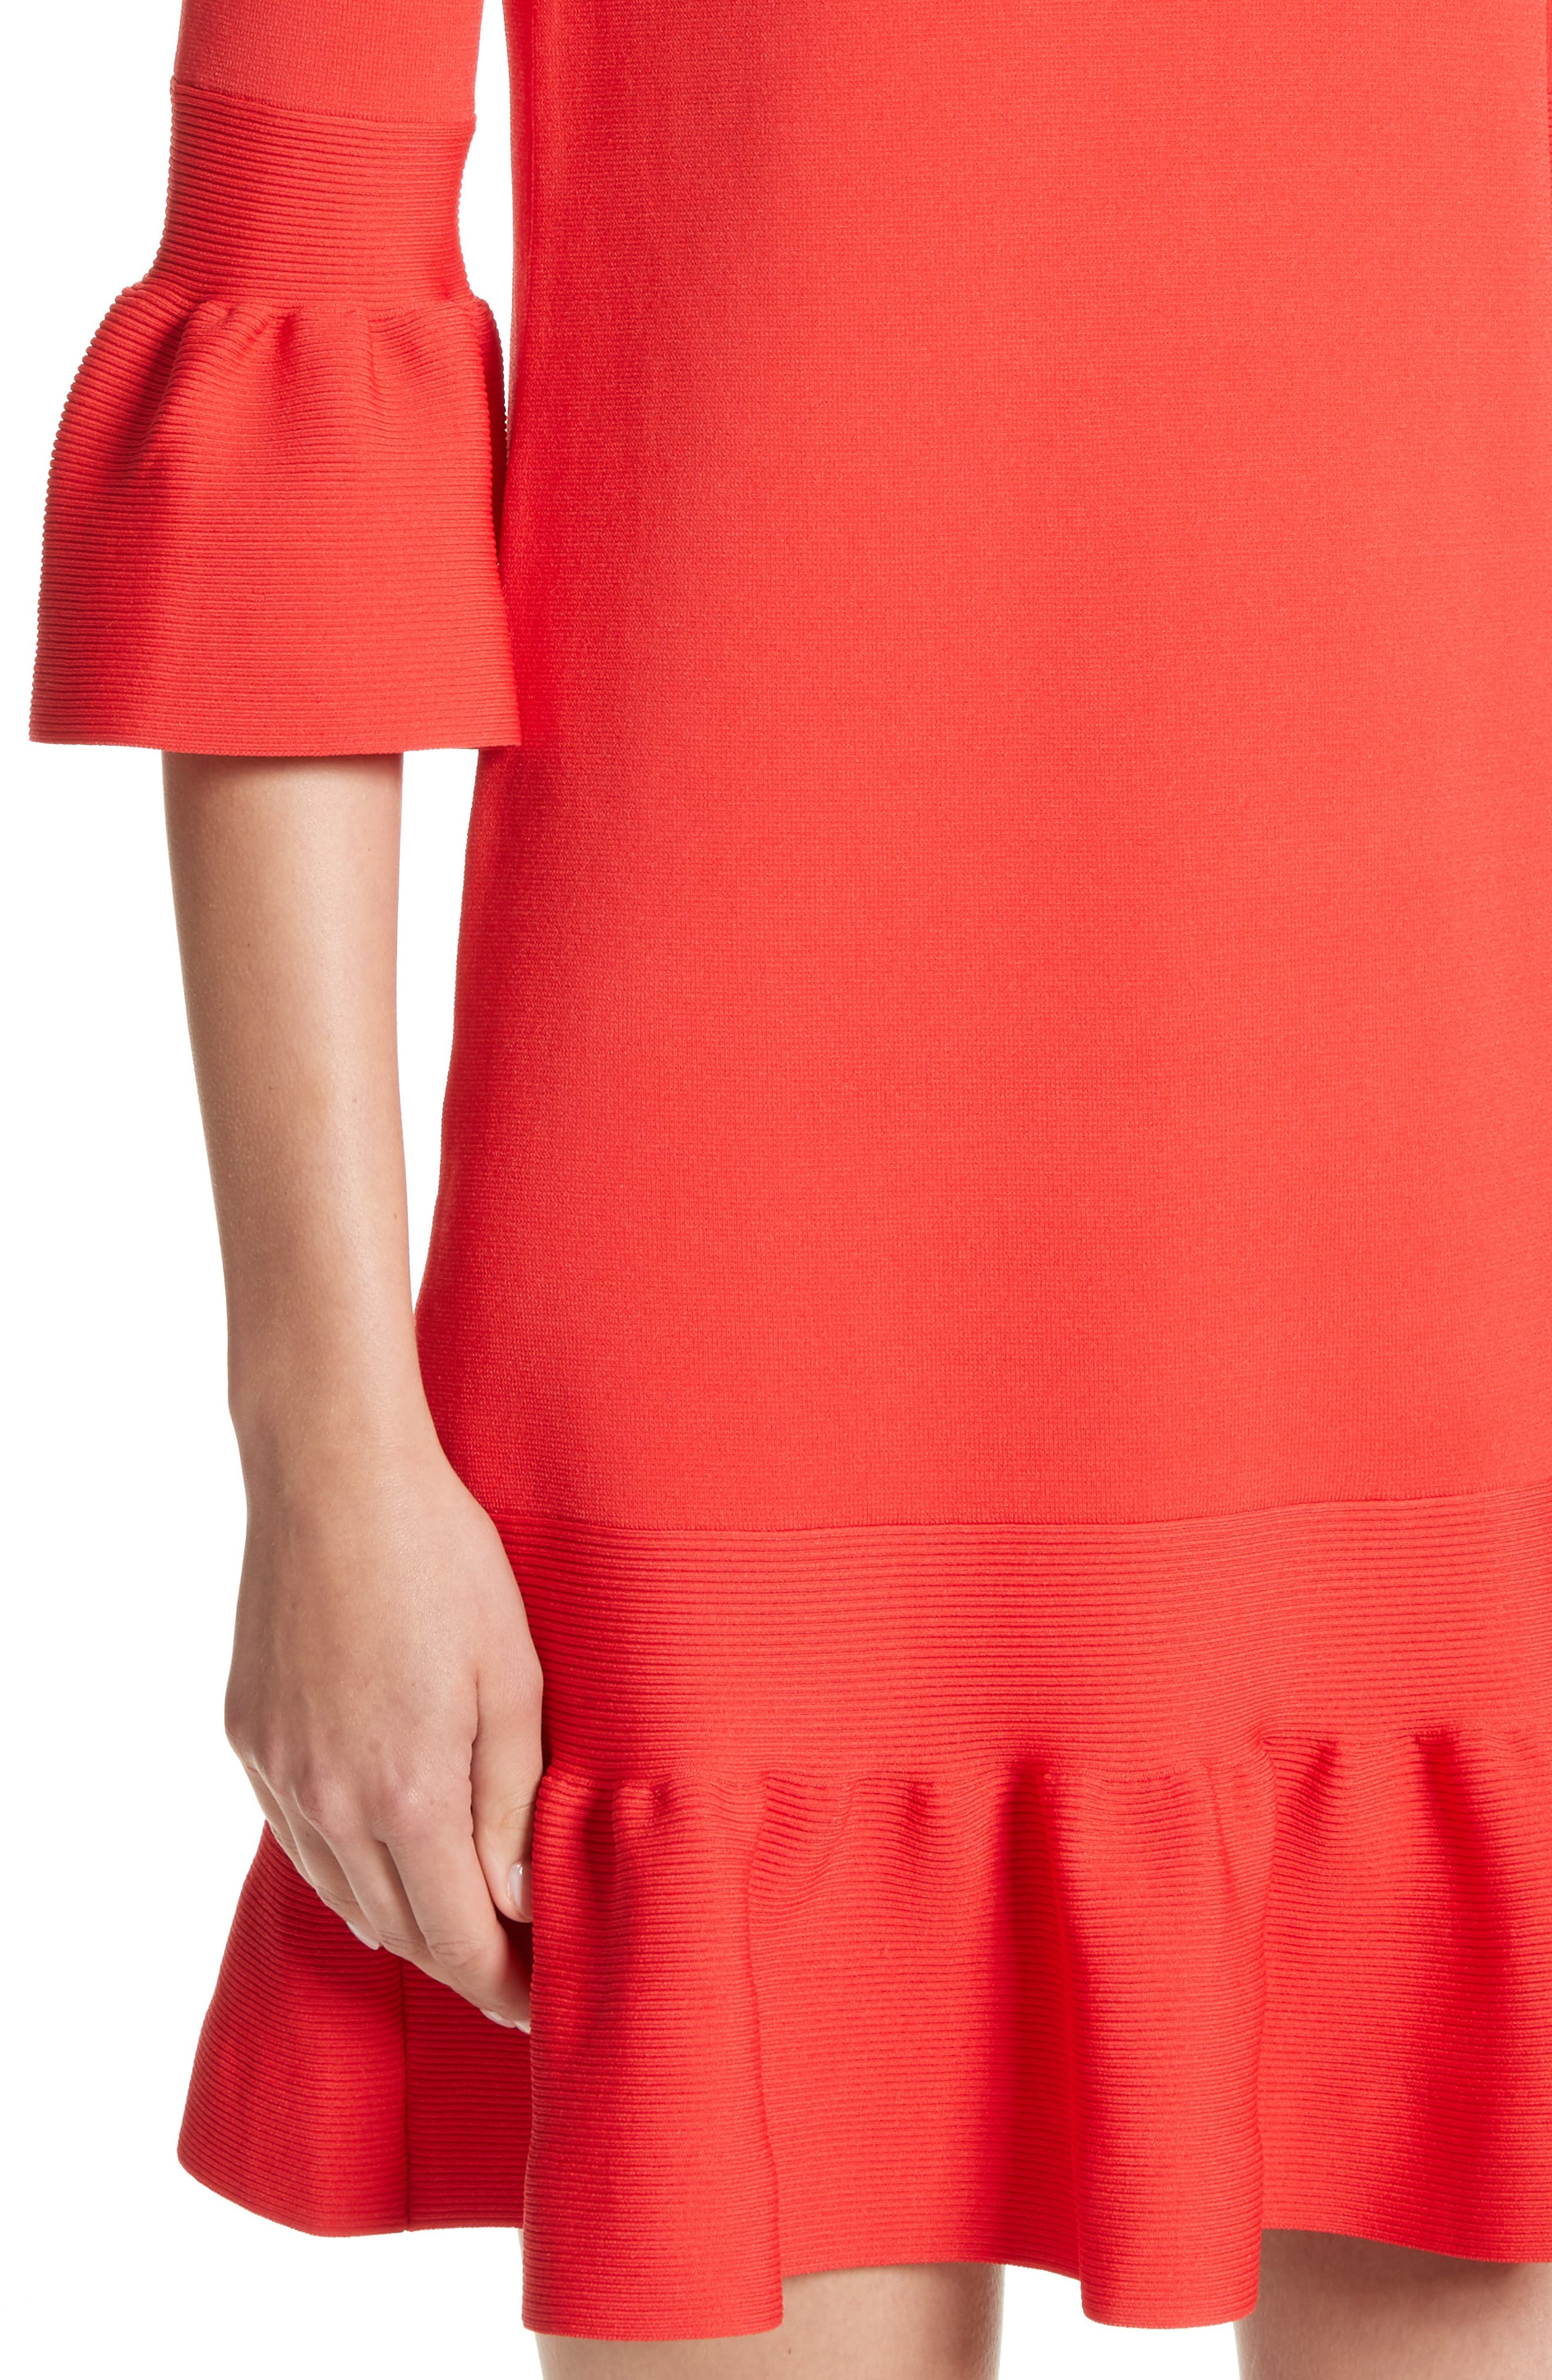 Tynia Peplum Ruffle Shift Dress,                             Alternate thumbnail 4, color,                             Bright Red